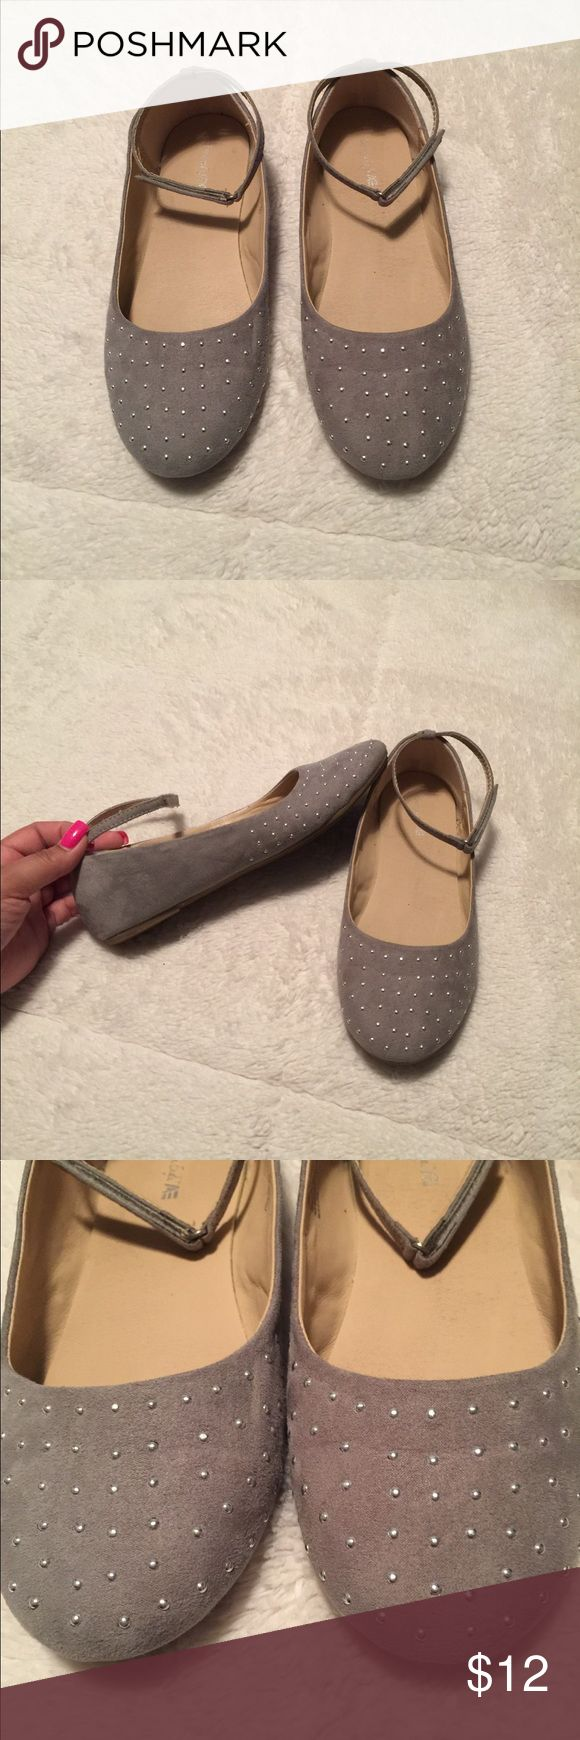 American Eagle By Payless Grey flats with tiny studs. Velcro loop tie around ankle. Size 5 kids. Wore only once. American Eagle By Payless Shoes Dress Shoes